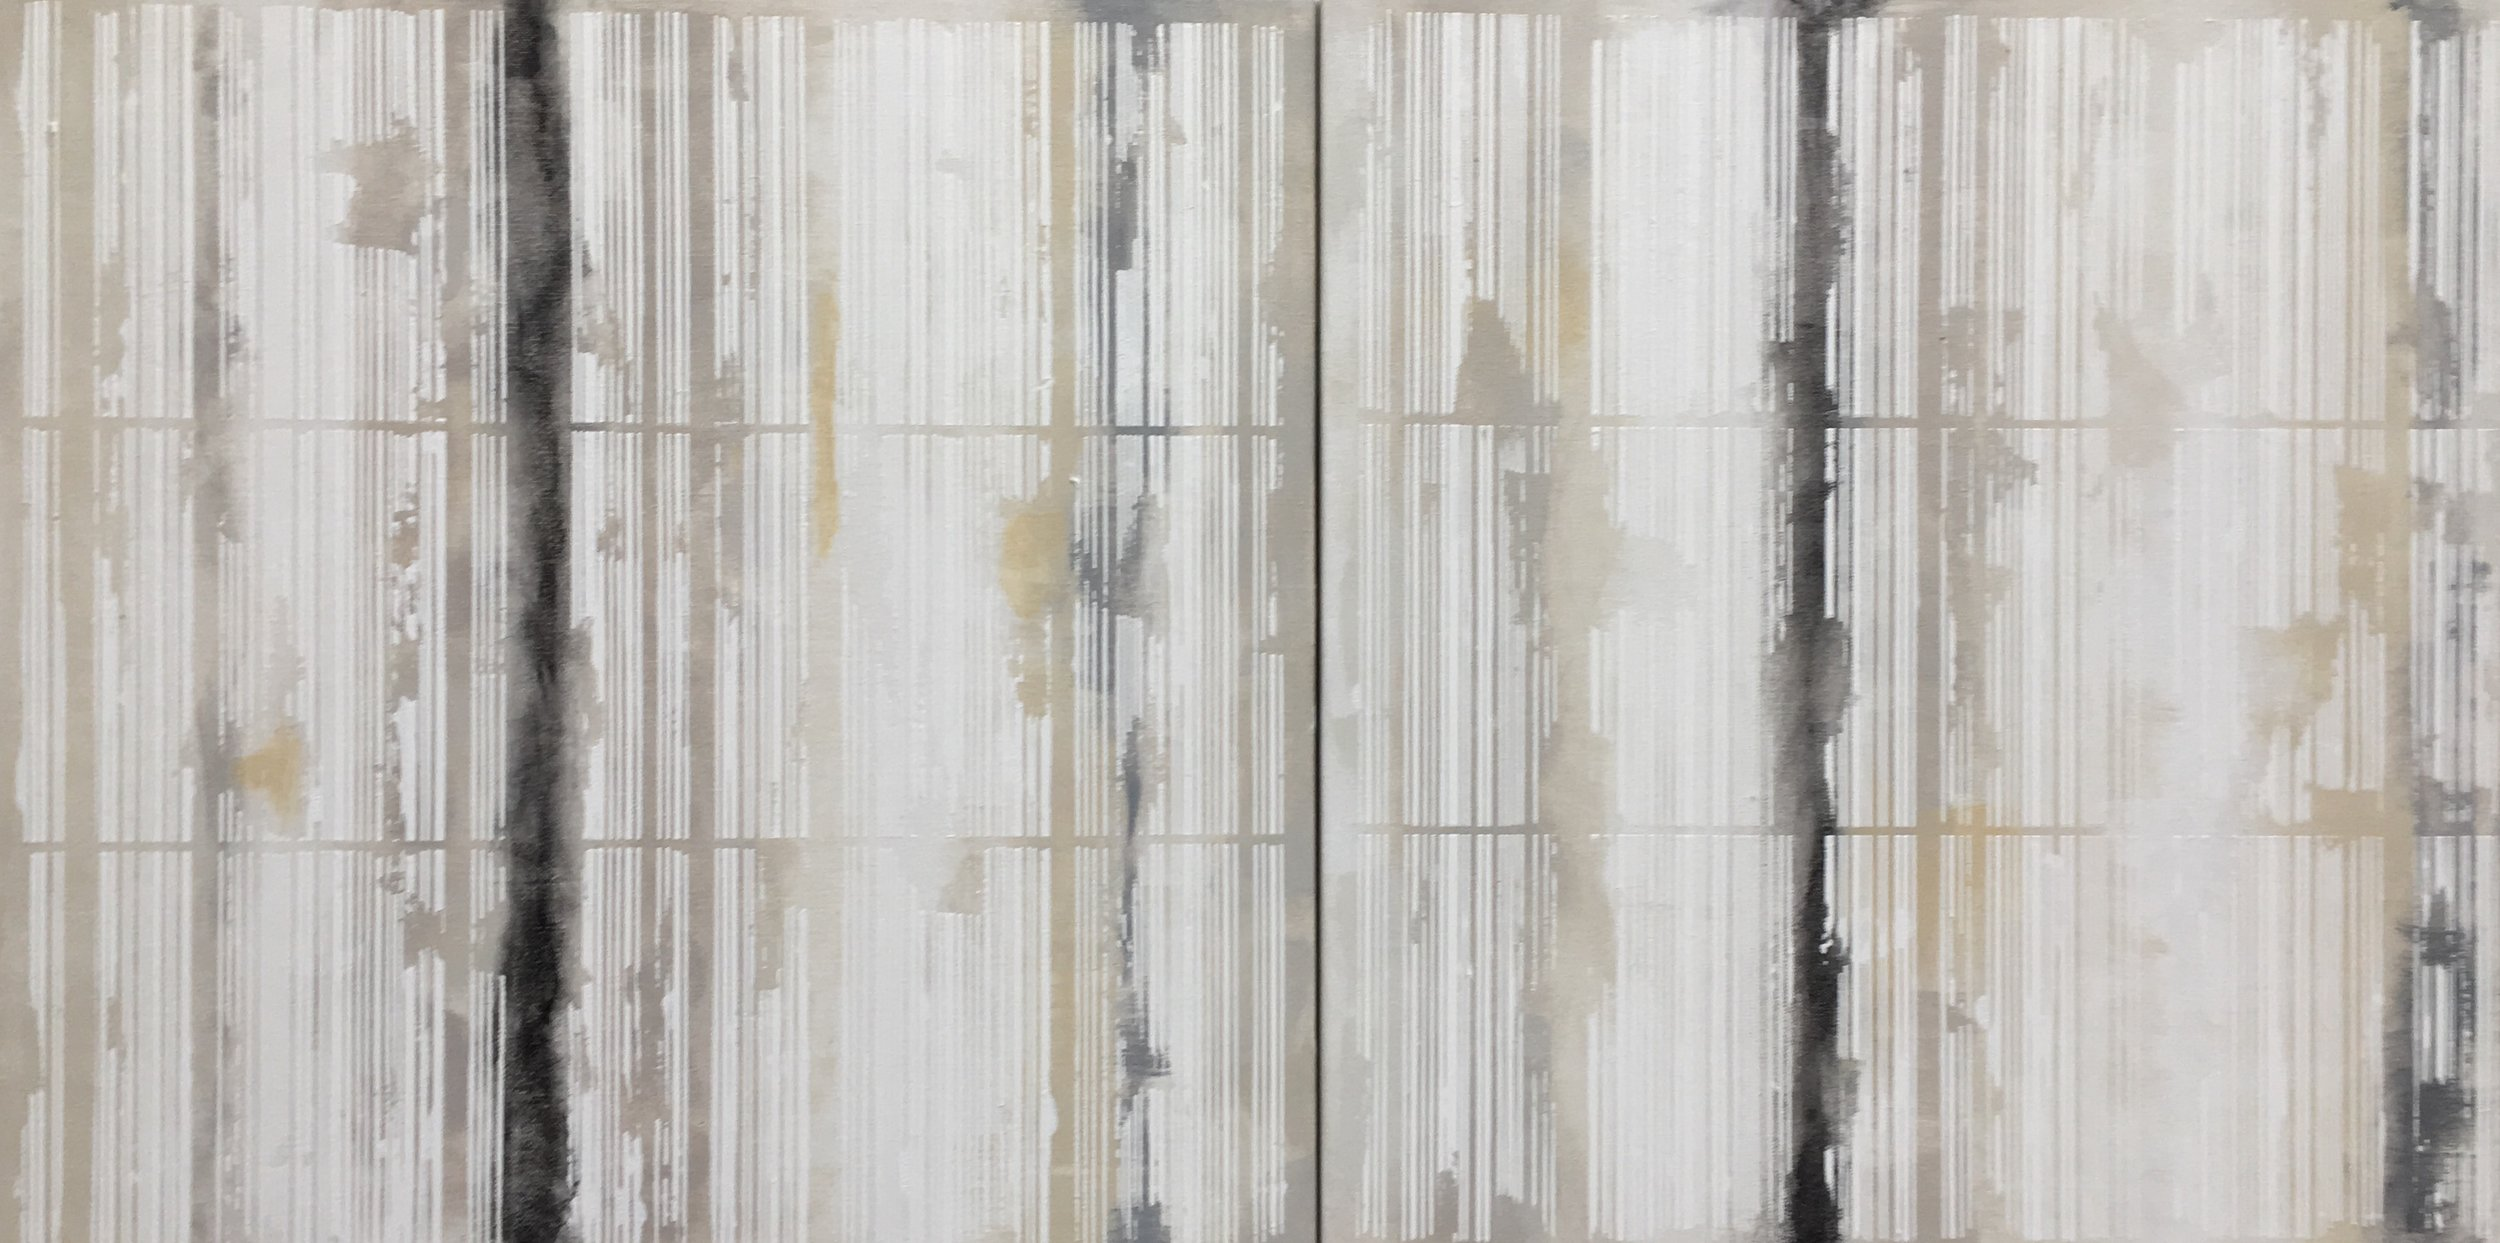 """Bar Code series, 2016. Acrylic on Canvas, 20"""" x 40"""" total dimension."""